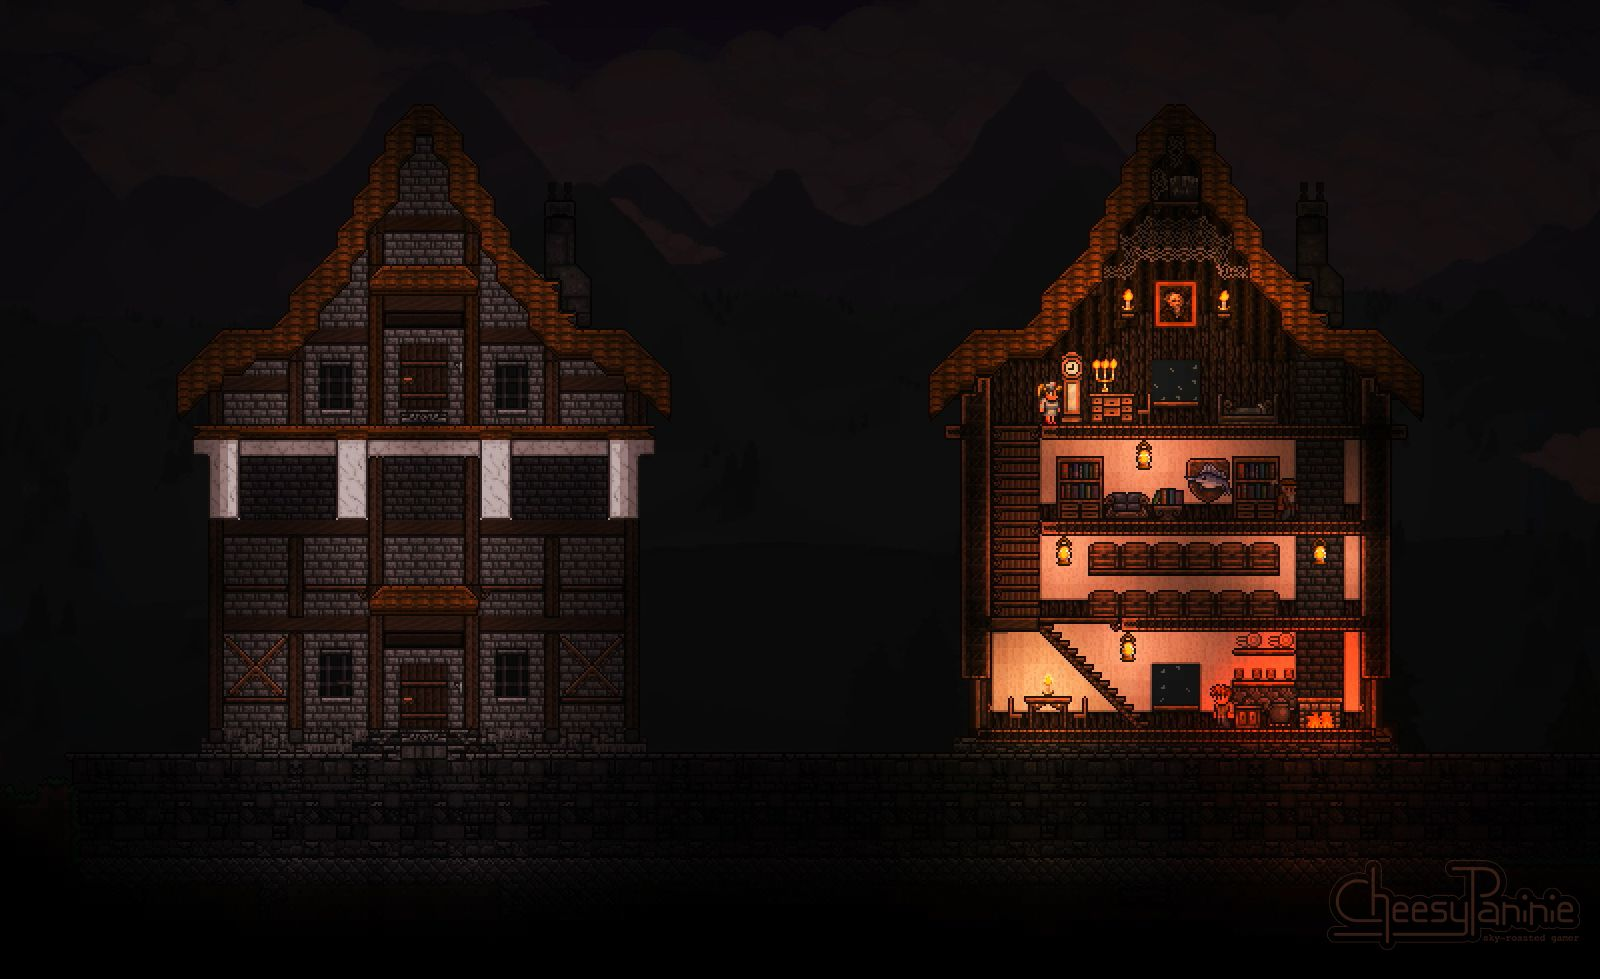 Wygol Village House Terraria Inspired By Castlevania Order Of